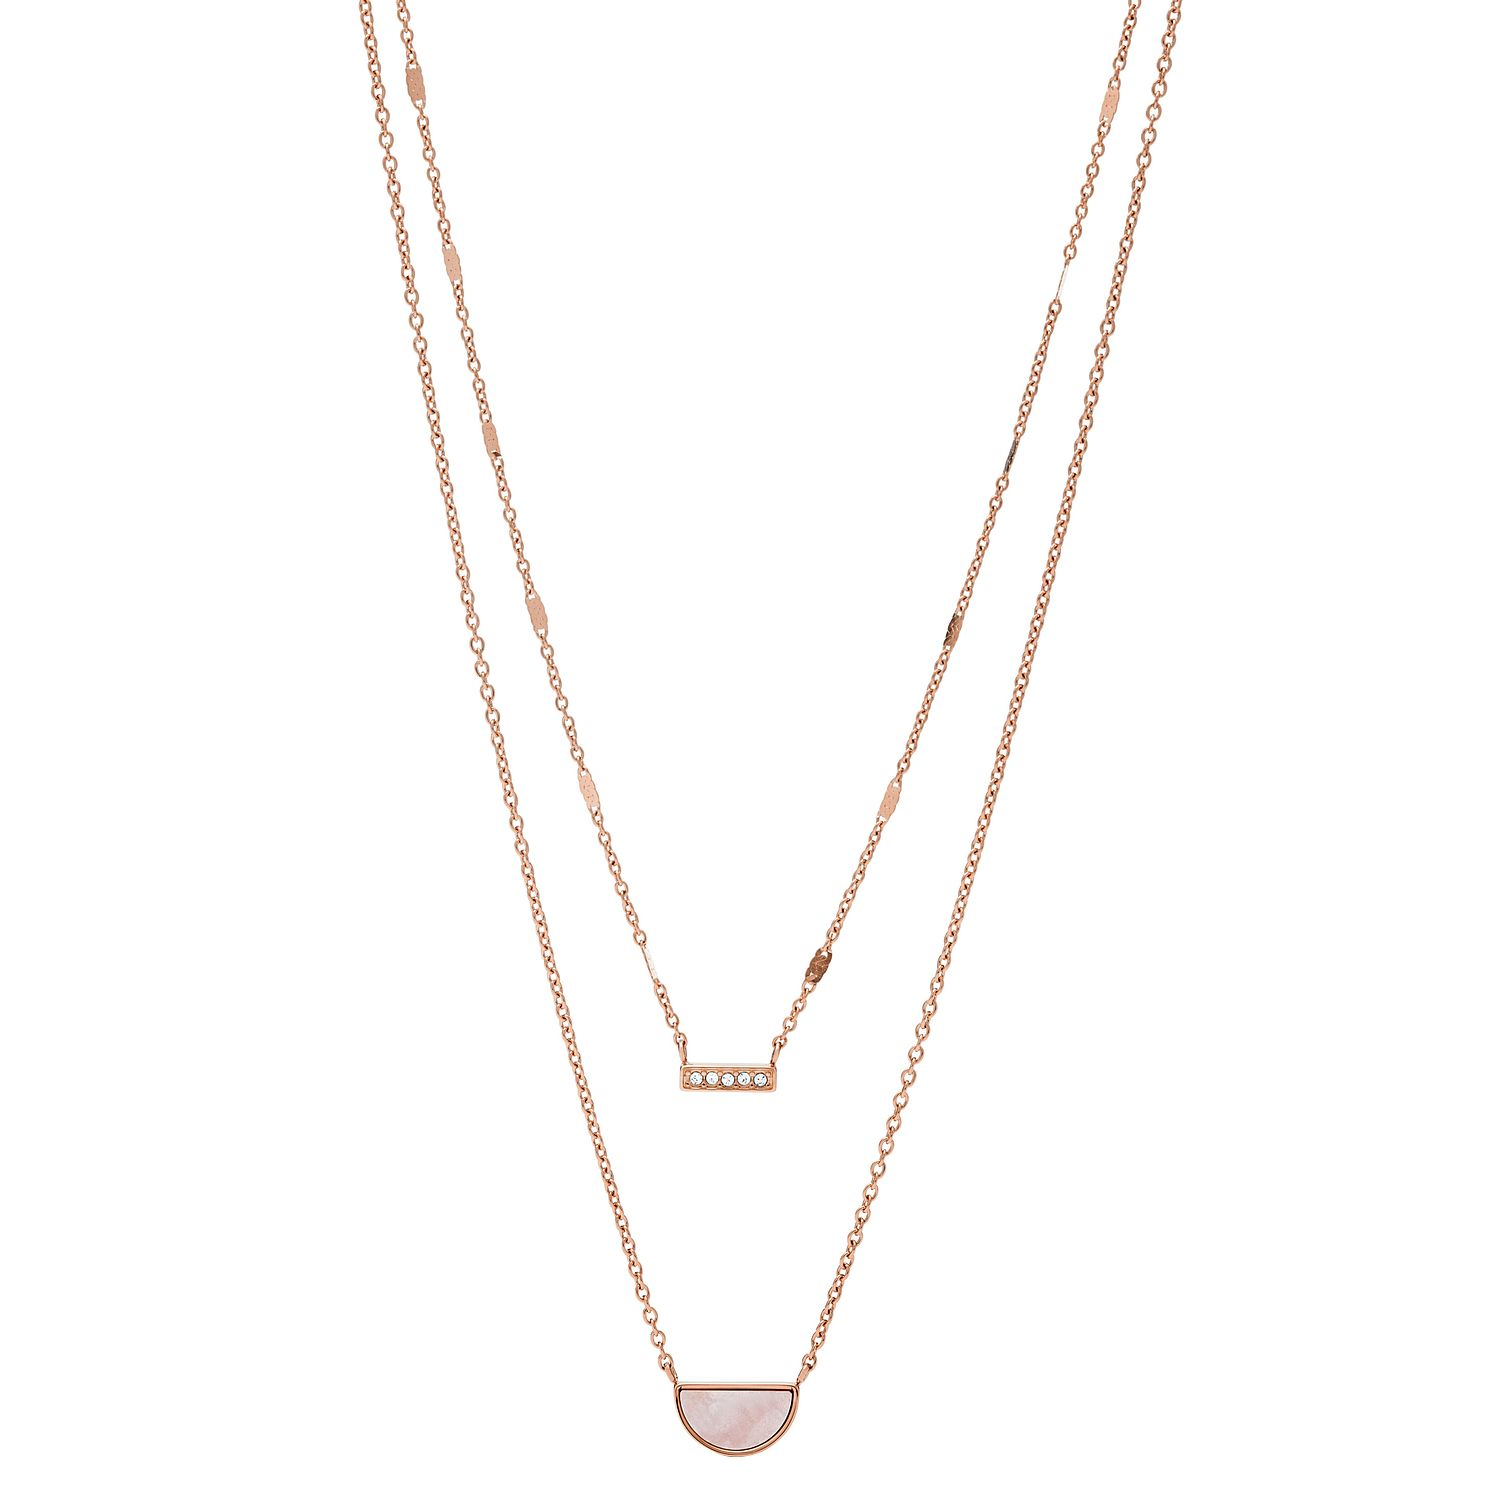 Fossil Rose Gold Tone Cubic Zirconia Duo Half Moon Necklace - Product number 2358638